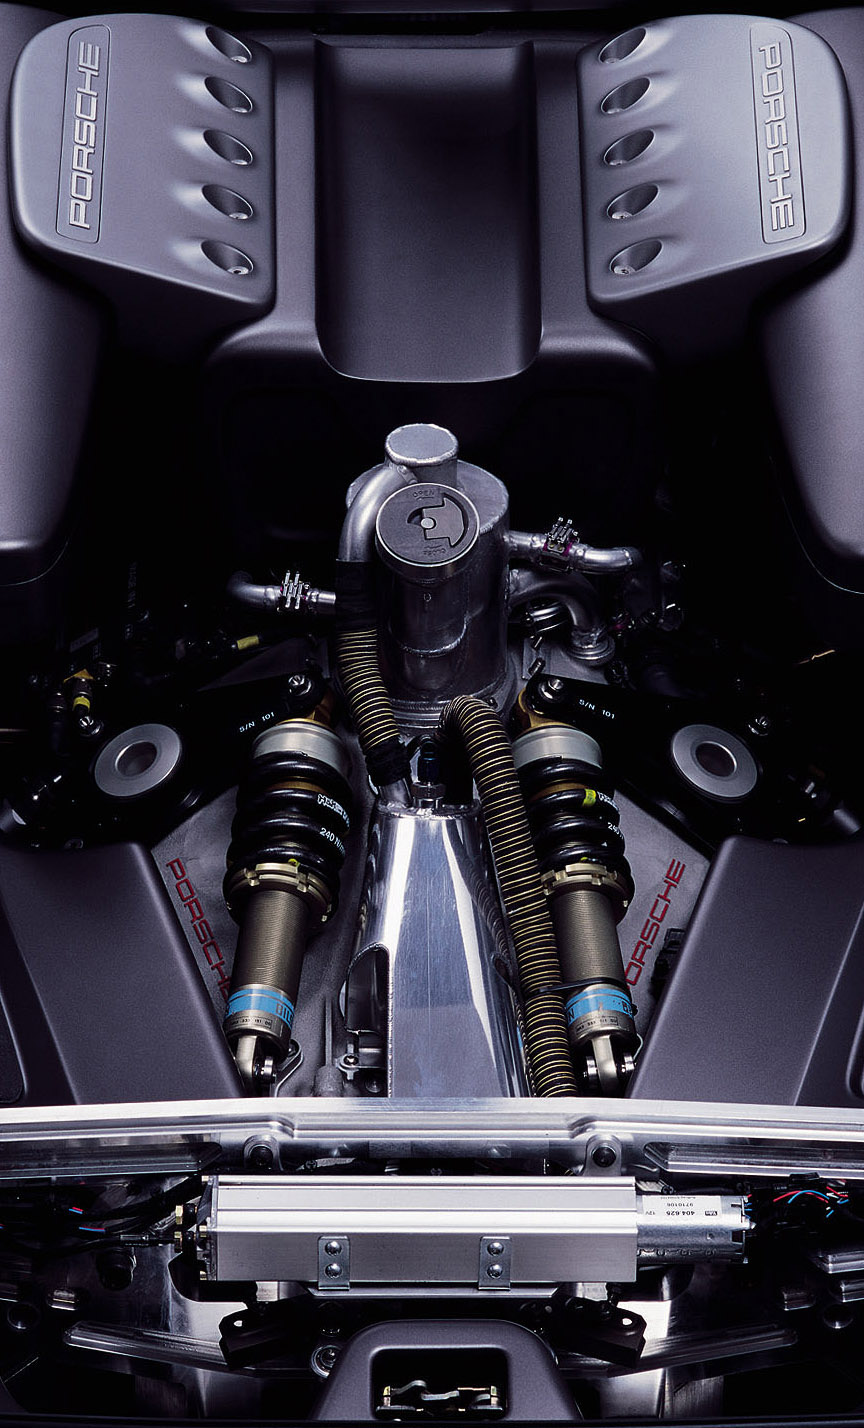 Porsche Carrera GT concept car engine